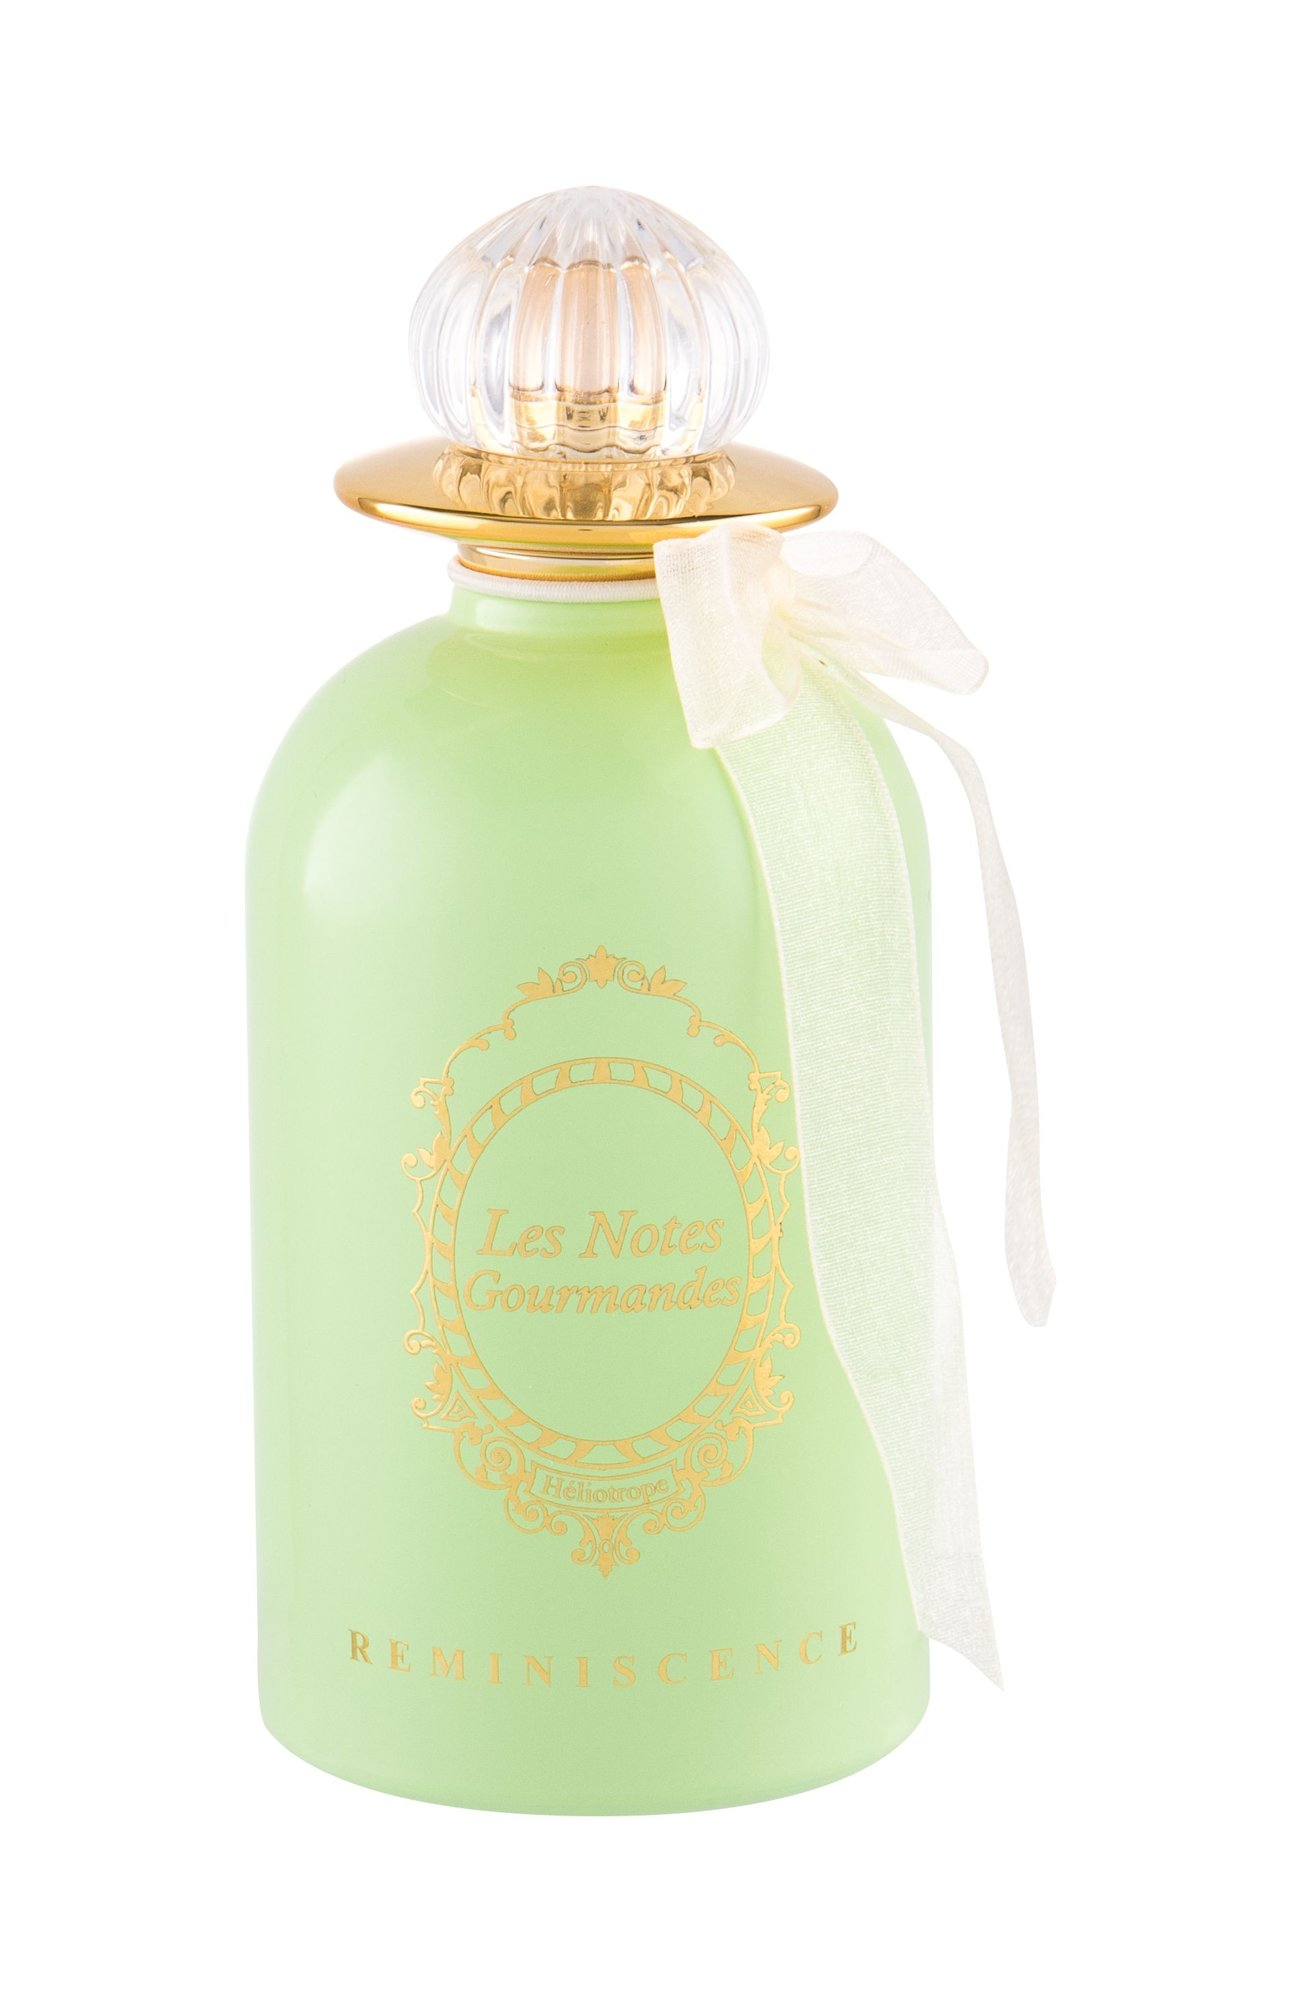 Reminiscence Les Notes Gourmandes Eau de Parfum 100ml